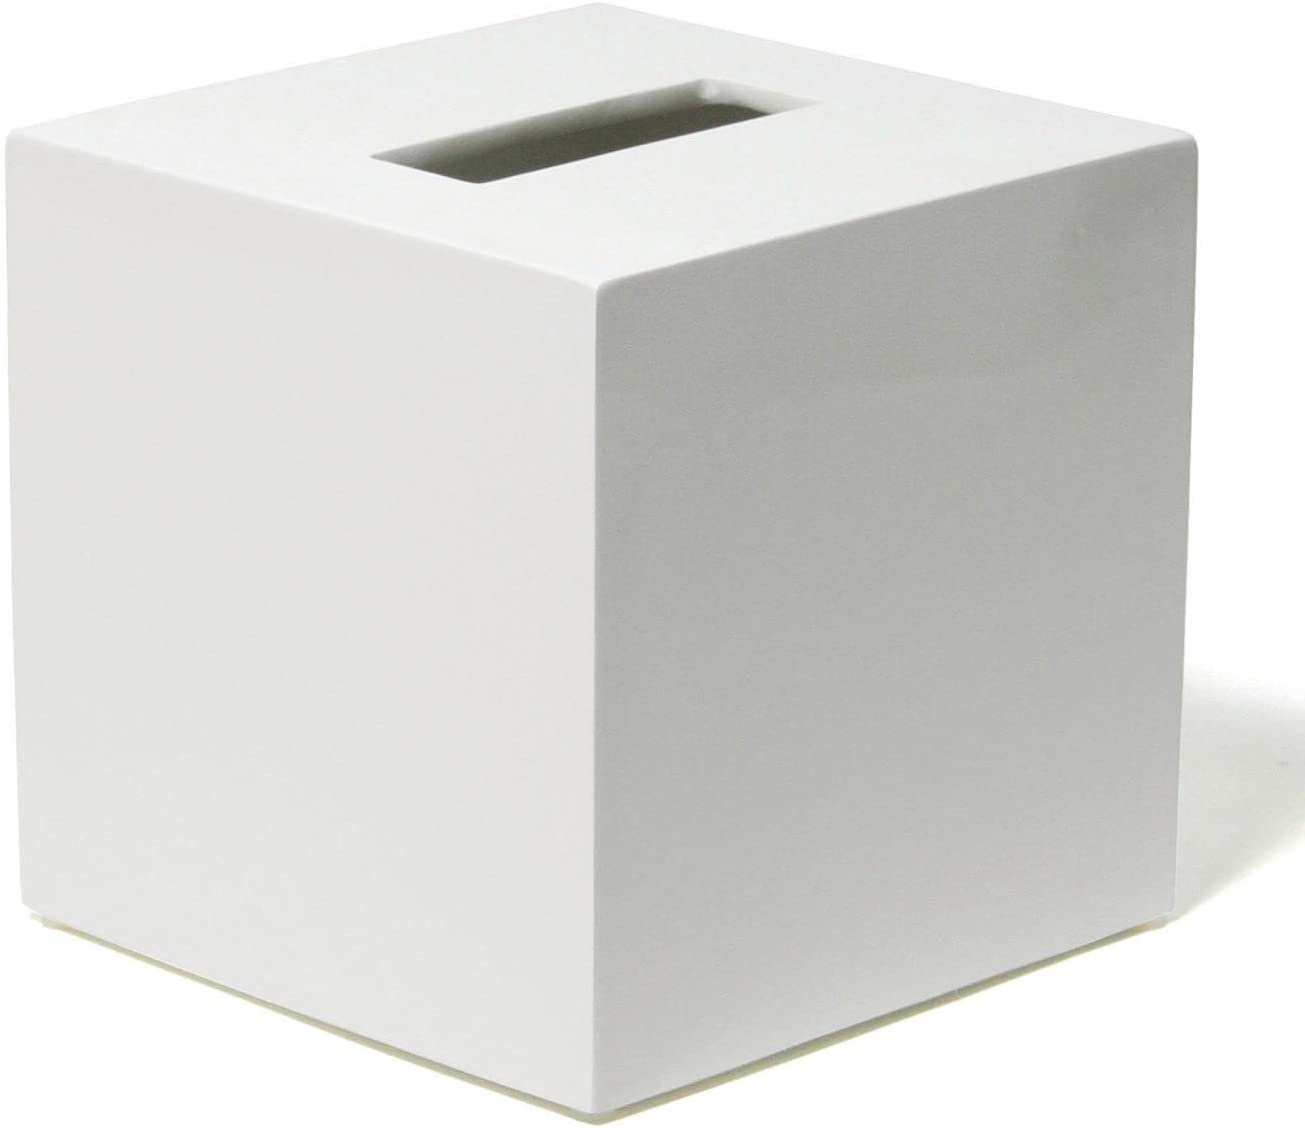 Jonathan Adler Lacquer Bath Tissue Box Cover, One Size, White